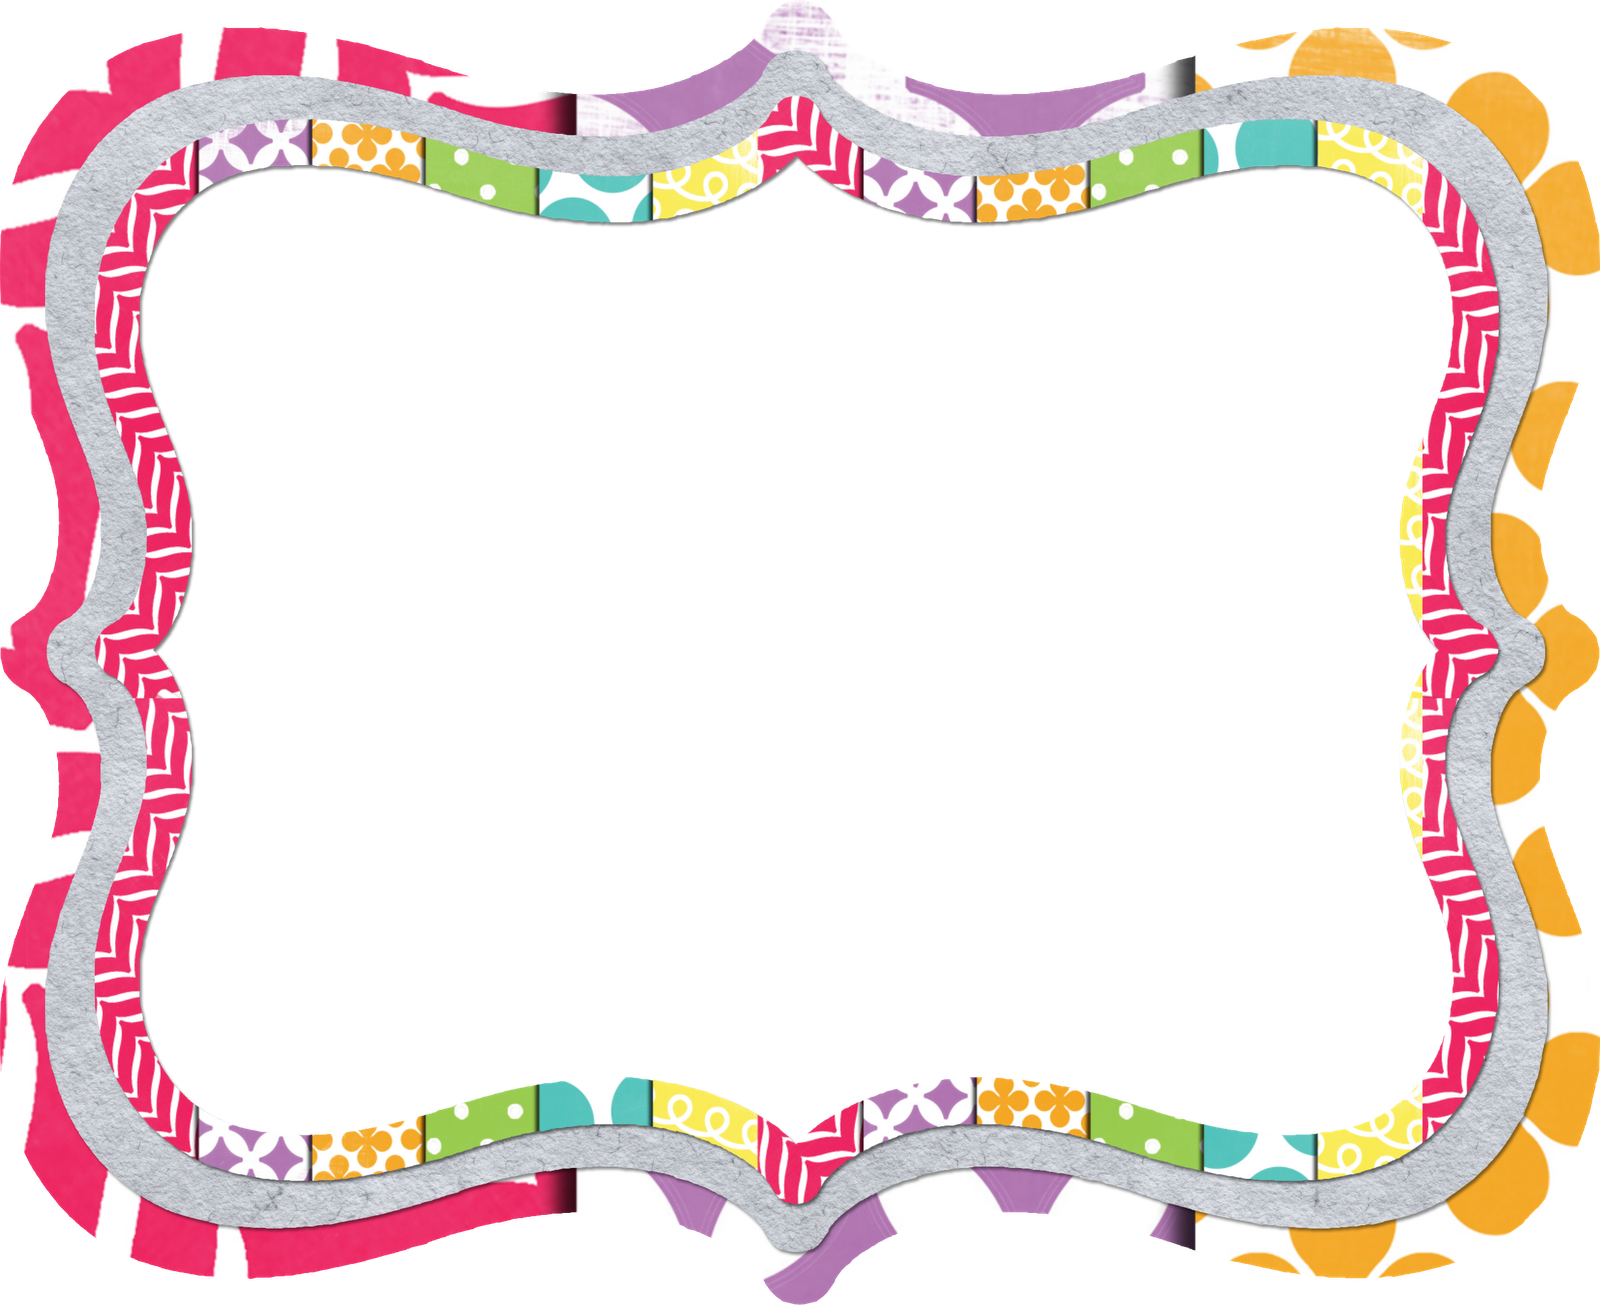 School clipart border picture library School borders and frames free clipart images - ClipartPost picture library